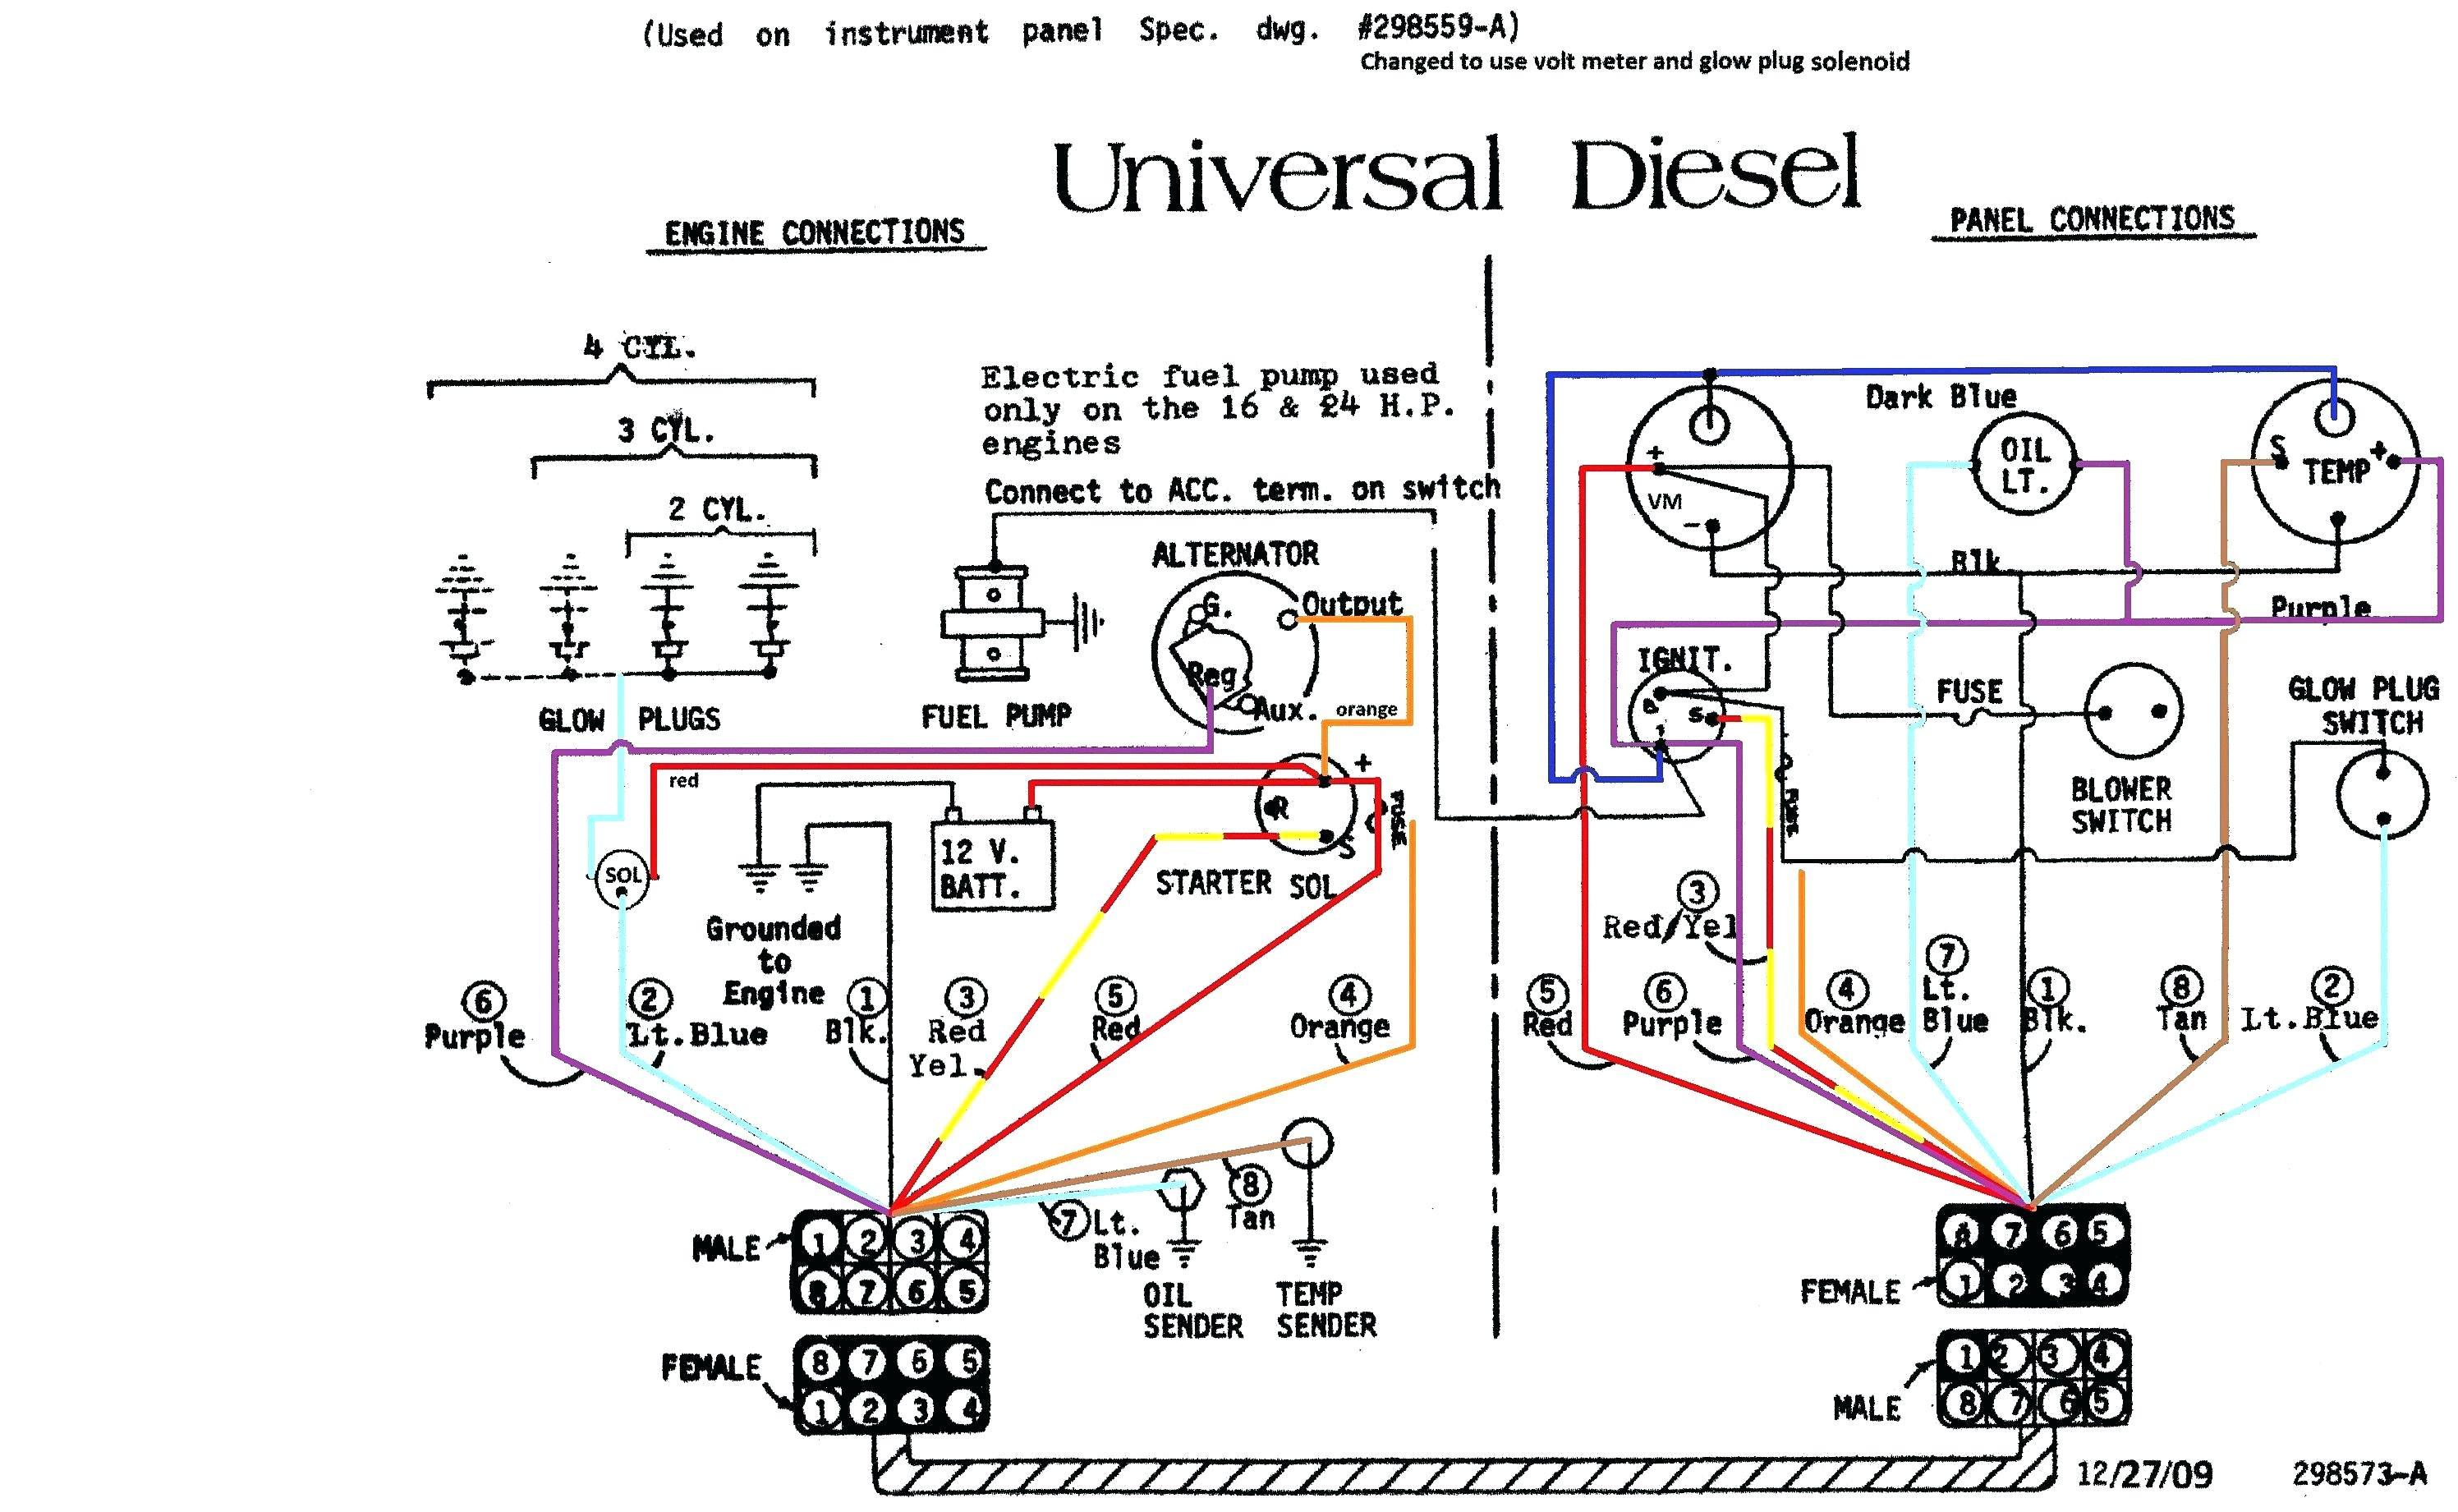 Chrysler 300m Engine Diagram Serpentine Belt Diagram Chrysler 300 Wiring  Diagram 7 Pin Plug Of Chrysler